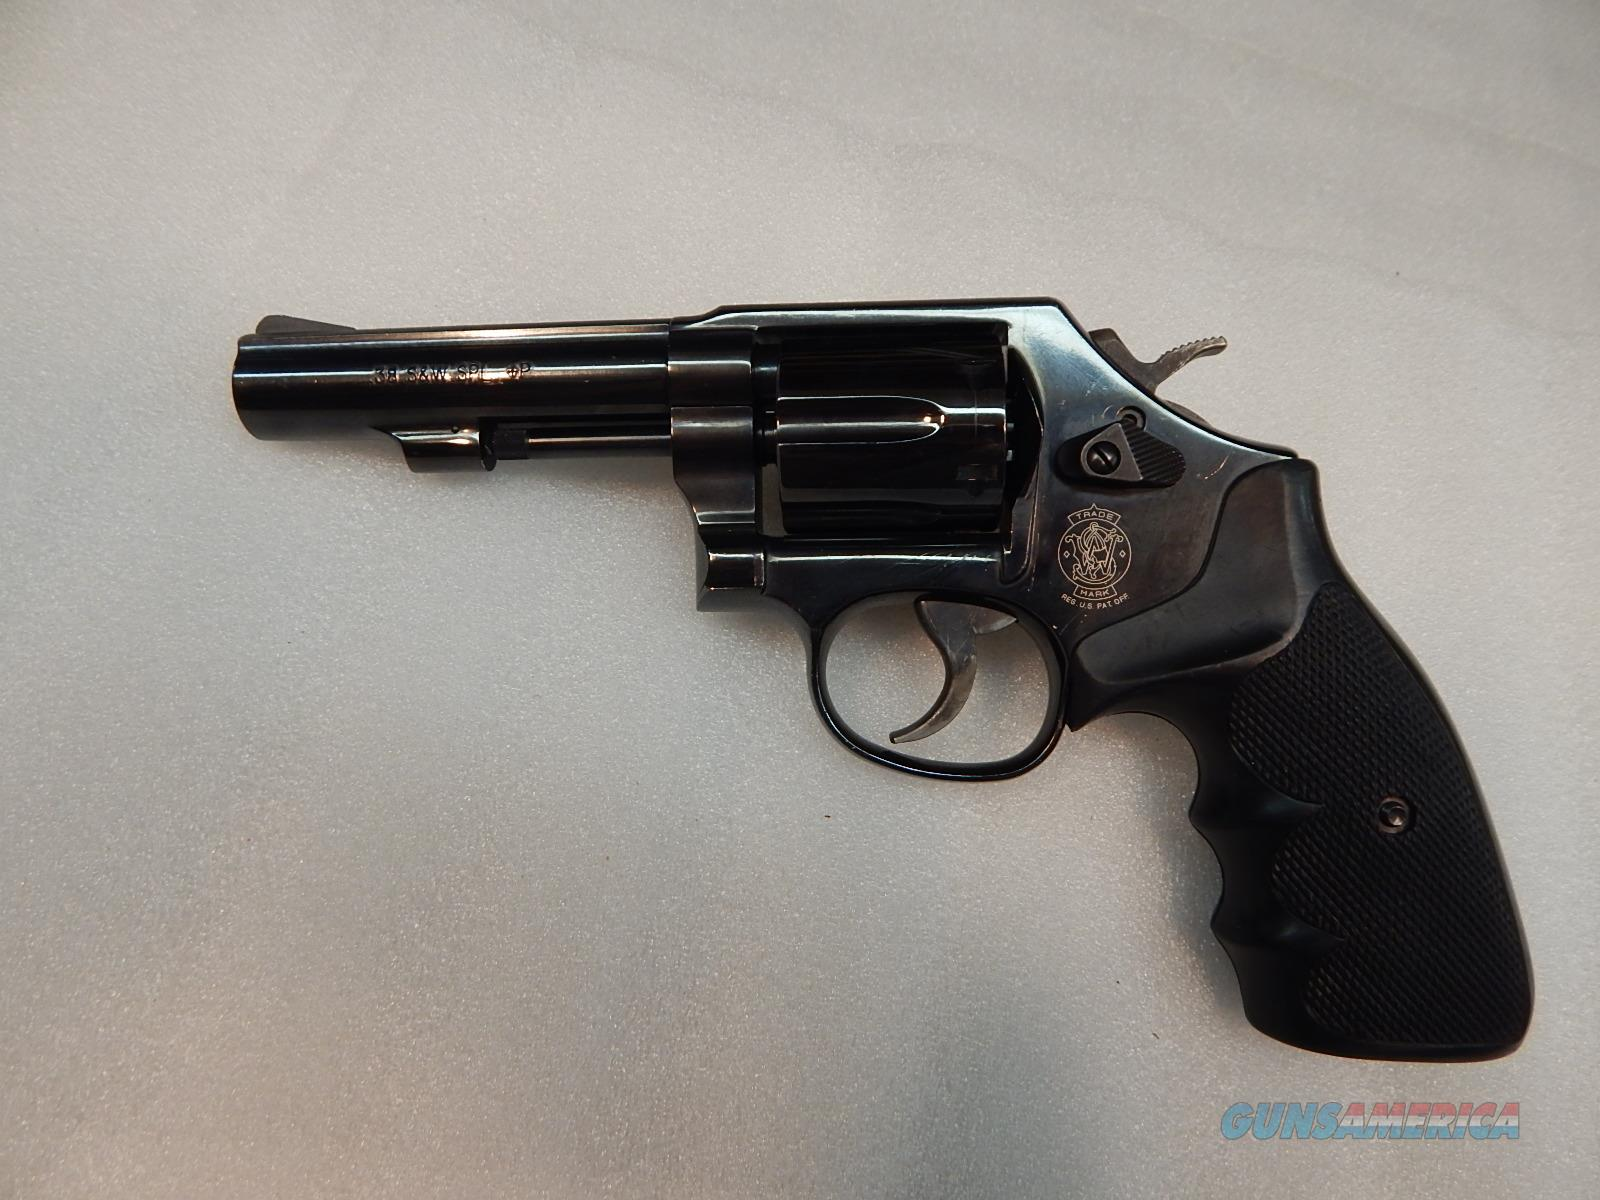 Smith & Wesson 10-14 Revolver - used  Guns > Pistols > Smith & Wesson Revolvers > Model 10